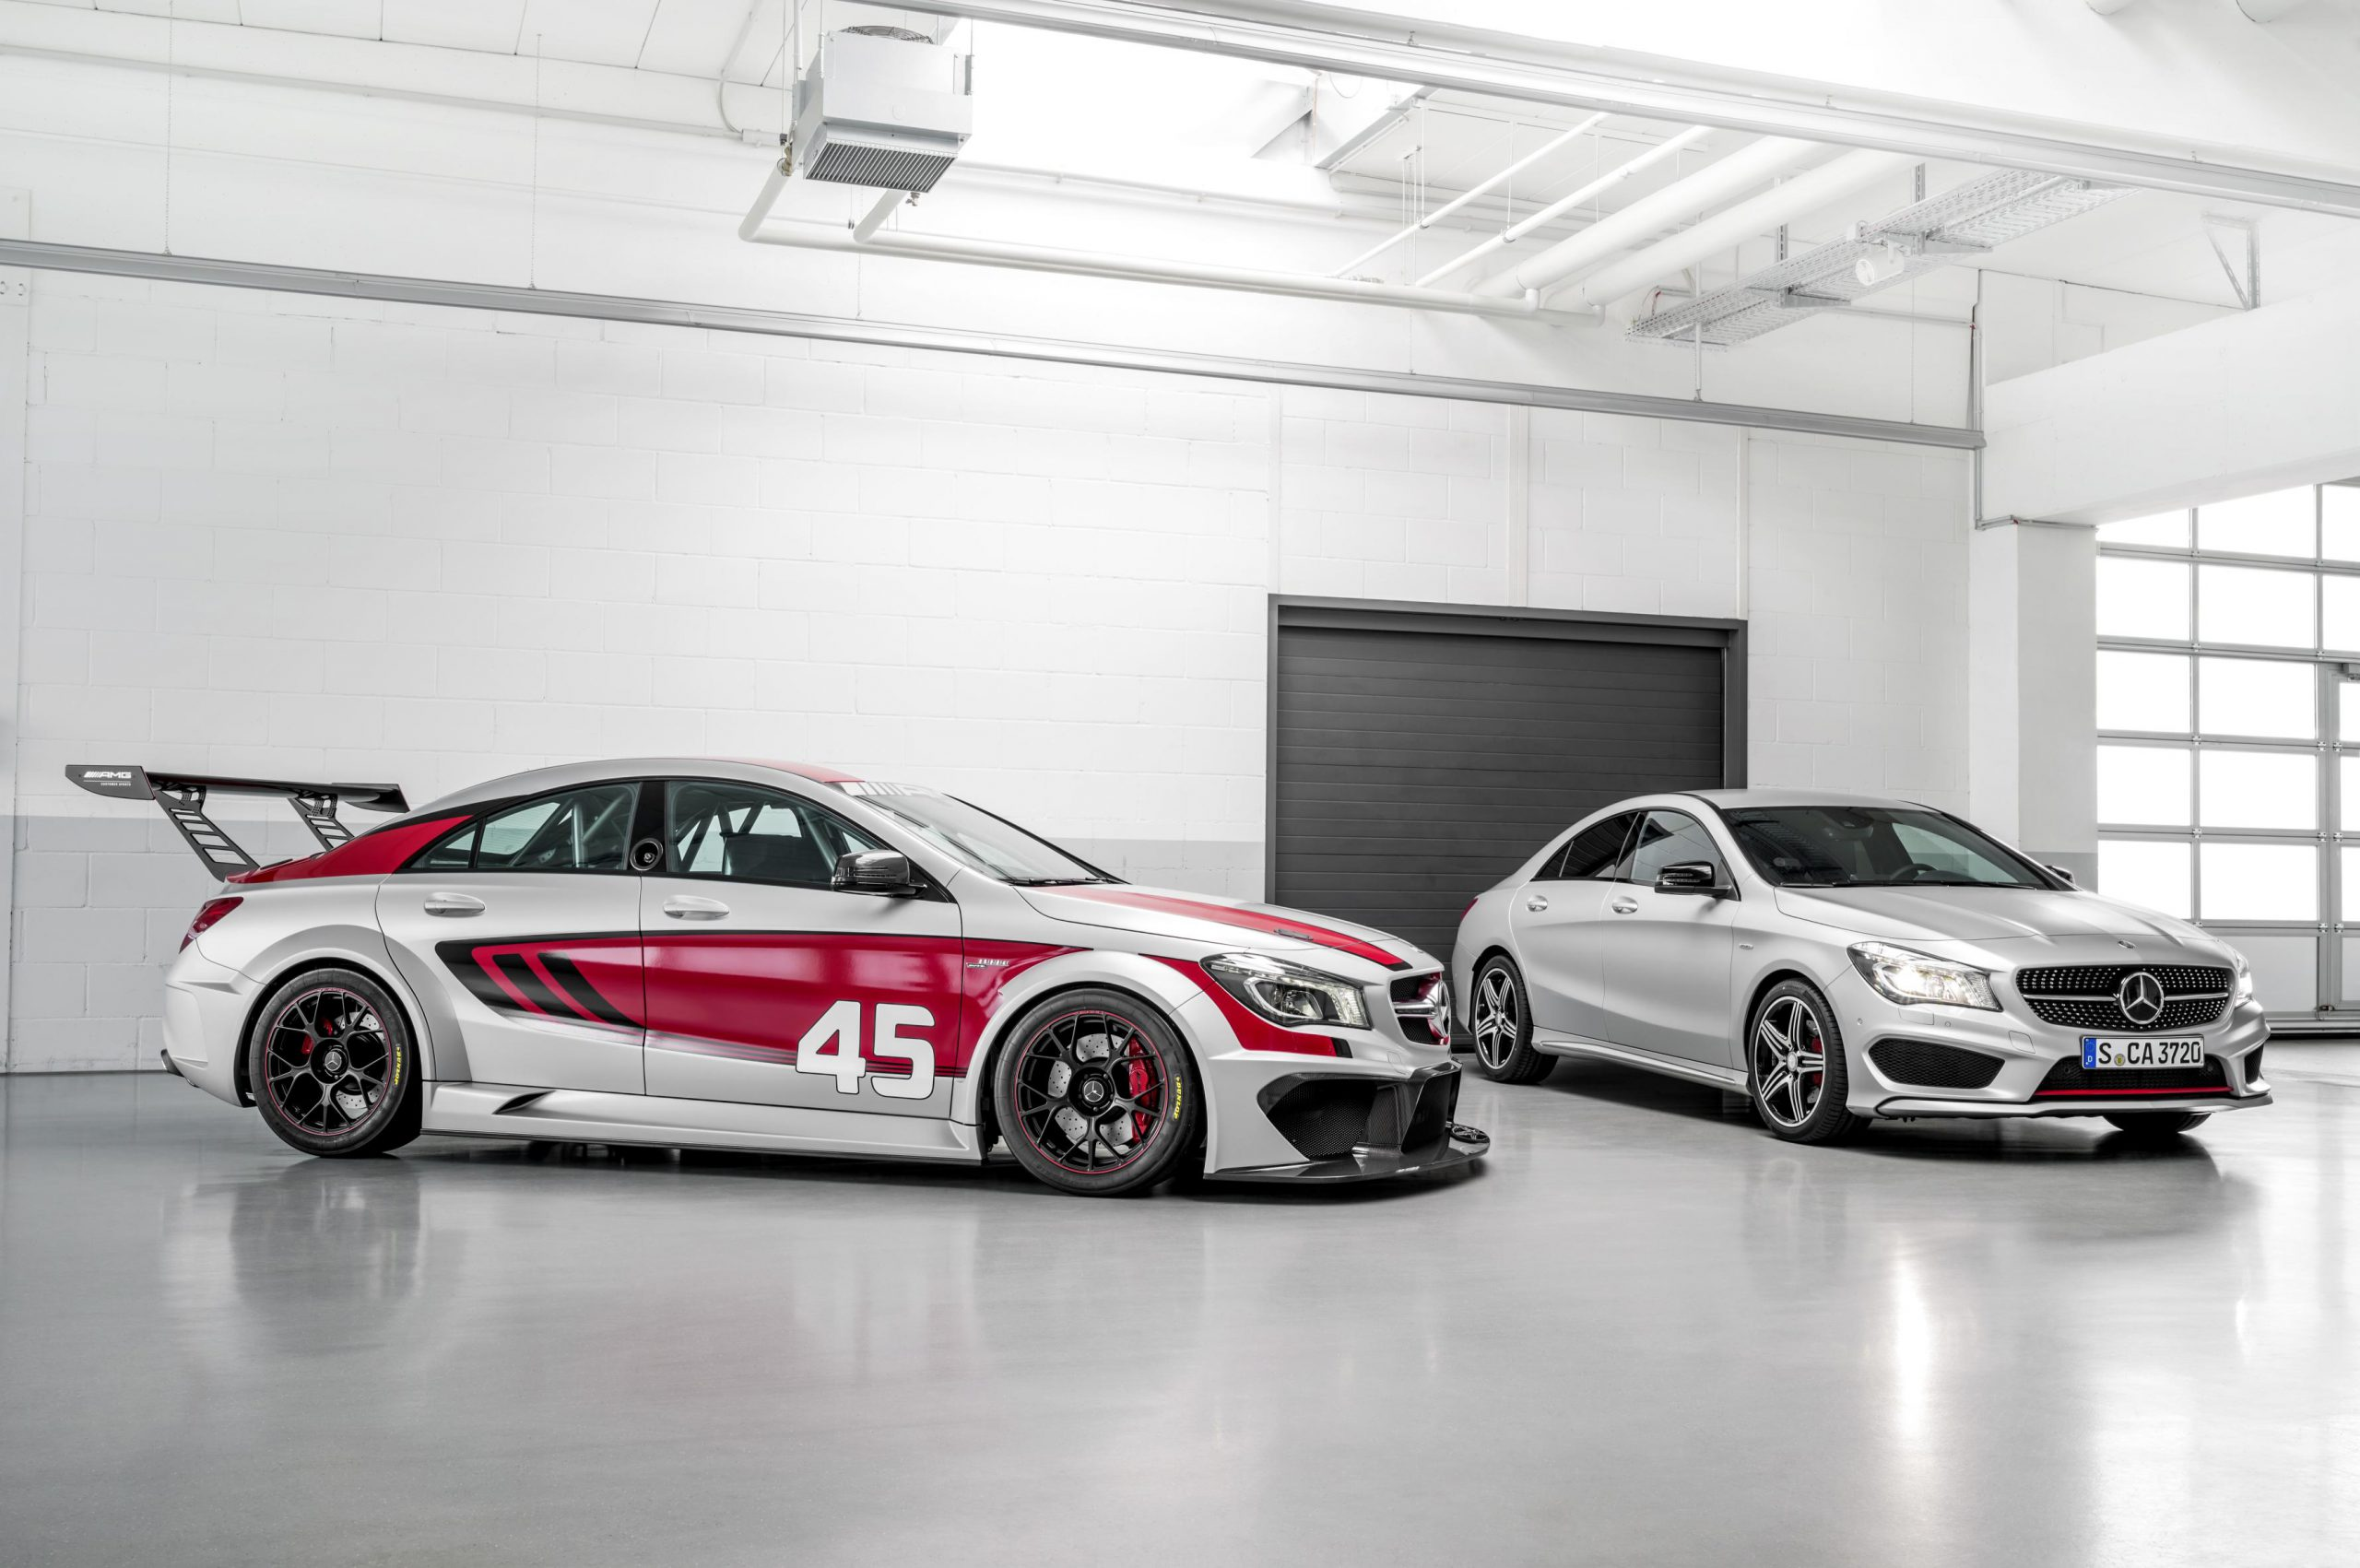 Mercedes-Benz CLA45 AMG Racing Series: Latest News – Surf4cars